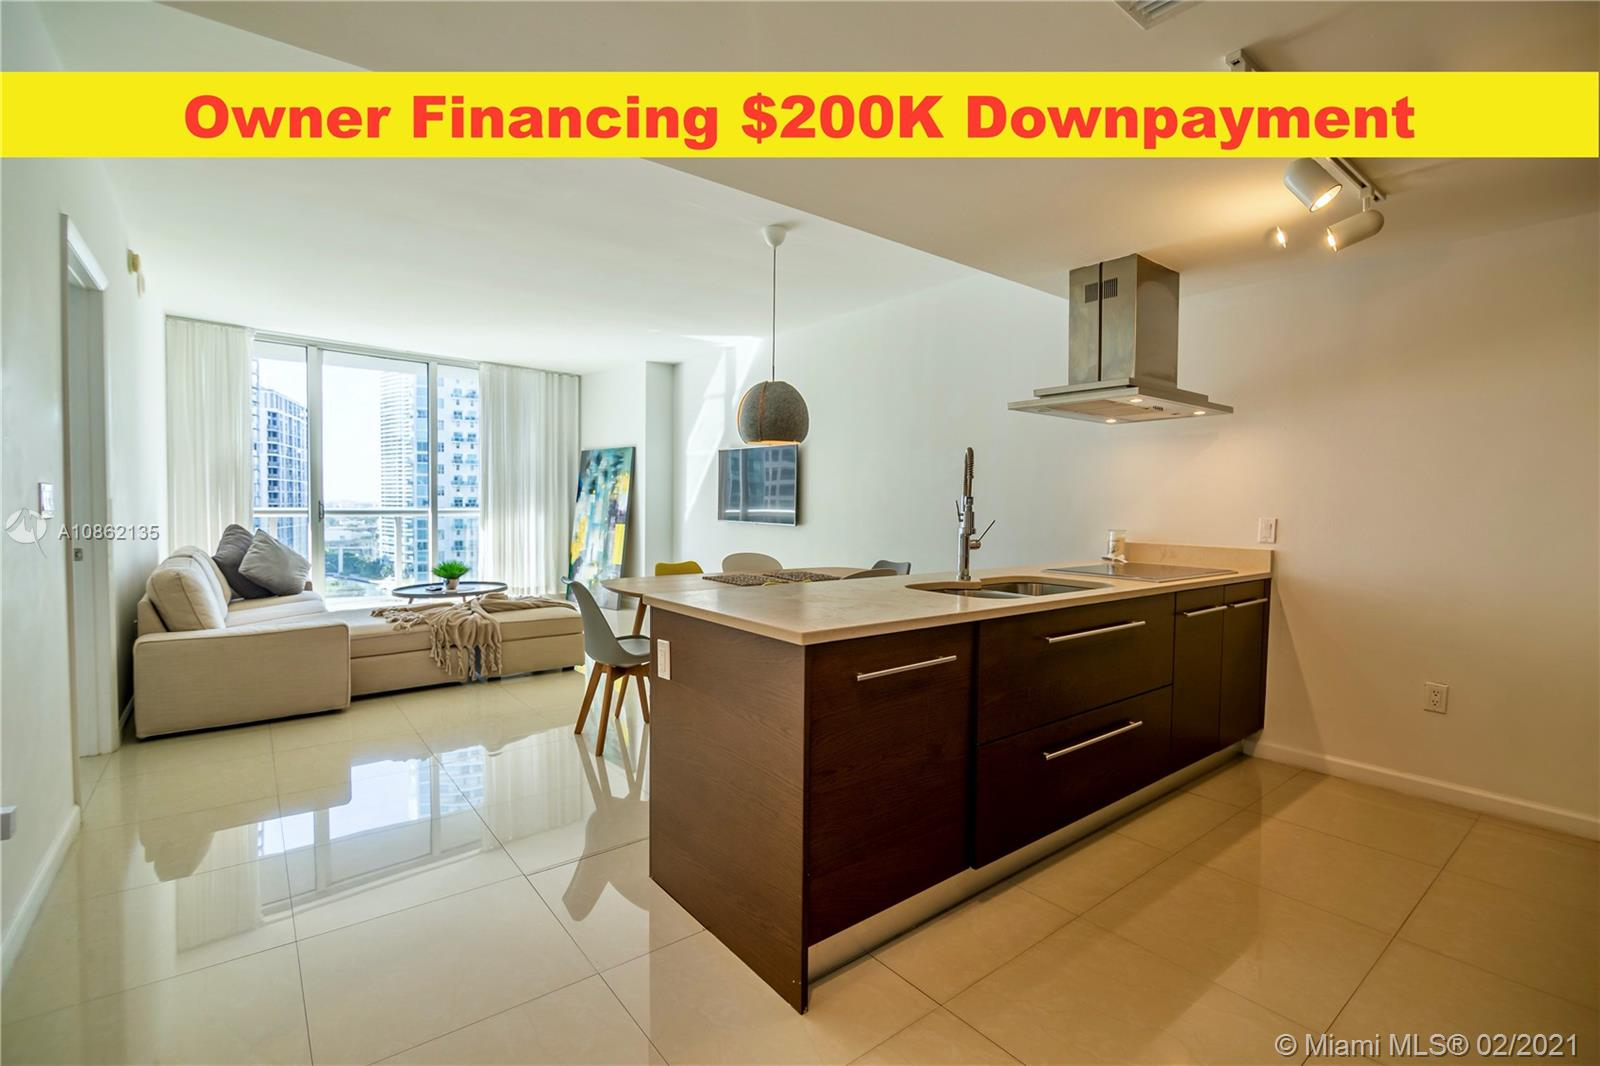 485 Brickell Ave # 1807, Miami, Florida 33131, 1 Bedroom Bedrooms, ,1 BathroomBathrooms,Residential,For Sale,485 Brickell Ave # 1807,A10862135